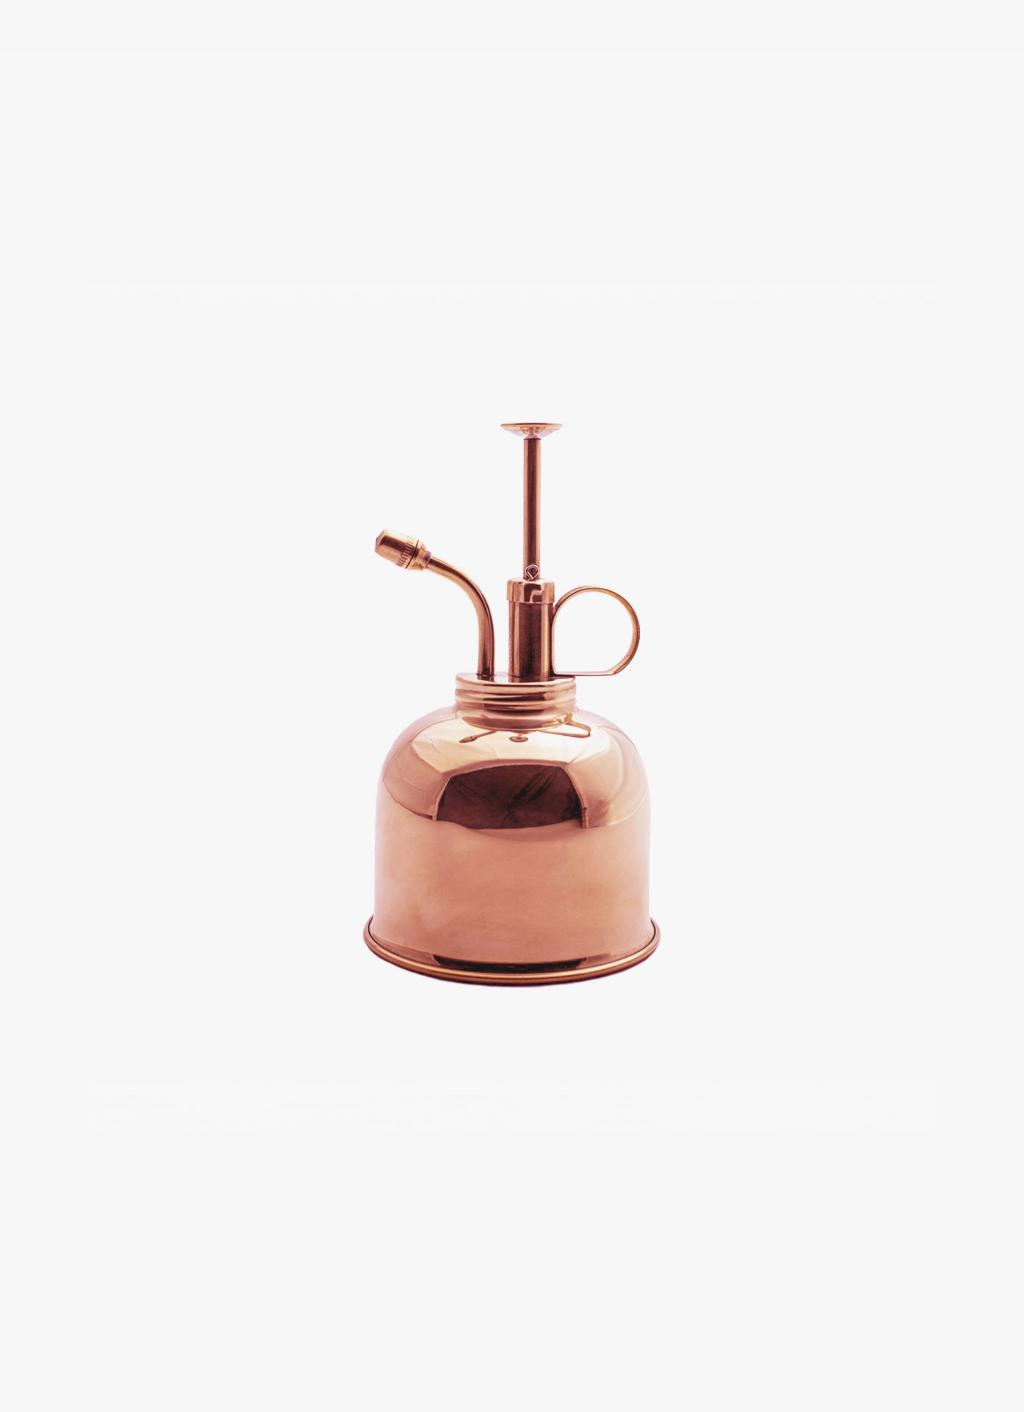 Haws Watering Cans - Metal Mist Sprayer - Copper